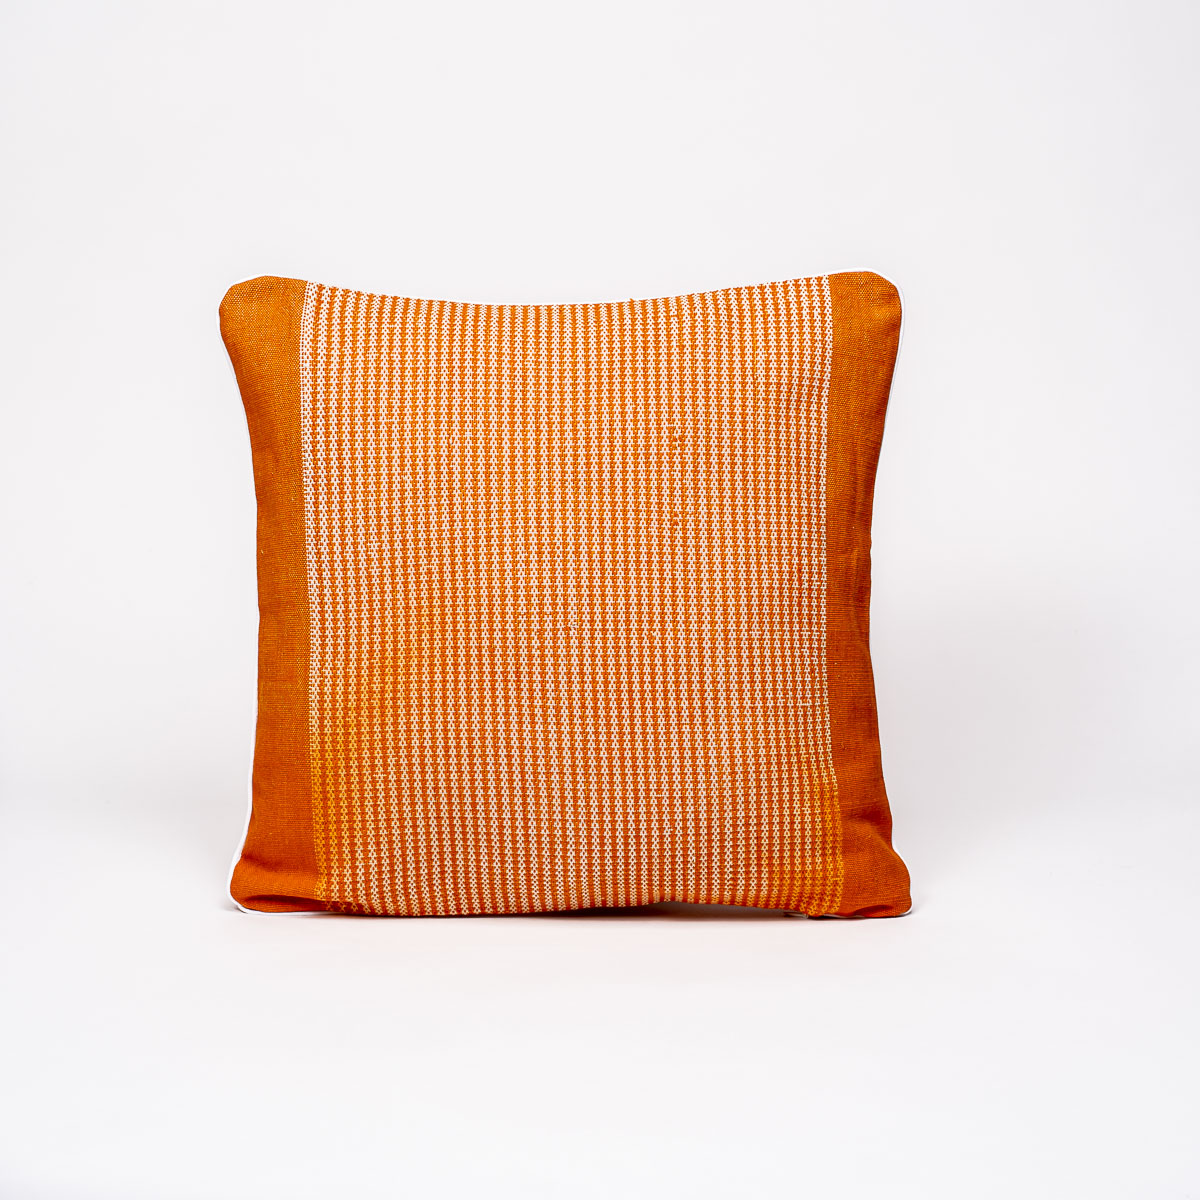 Coussin Nha sra orange - carré